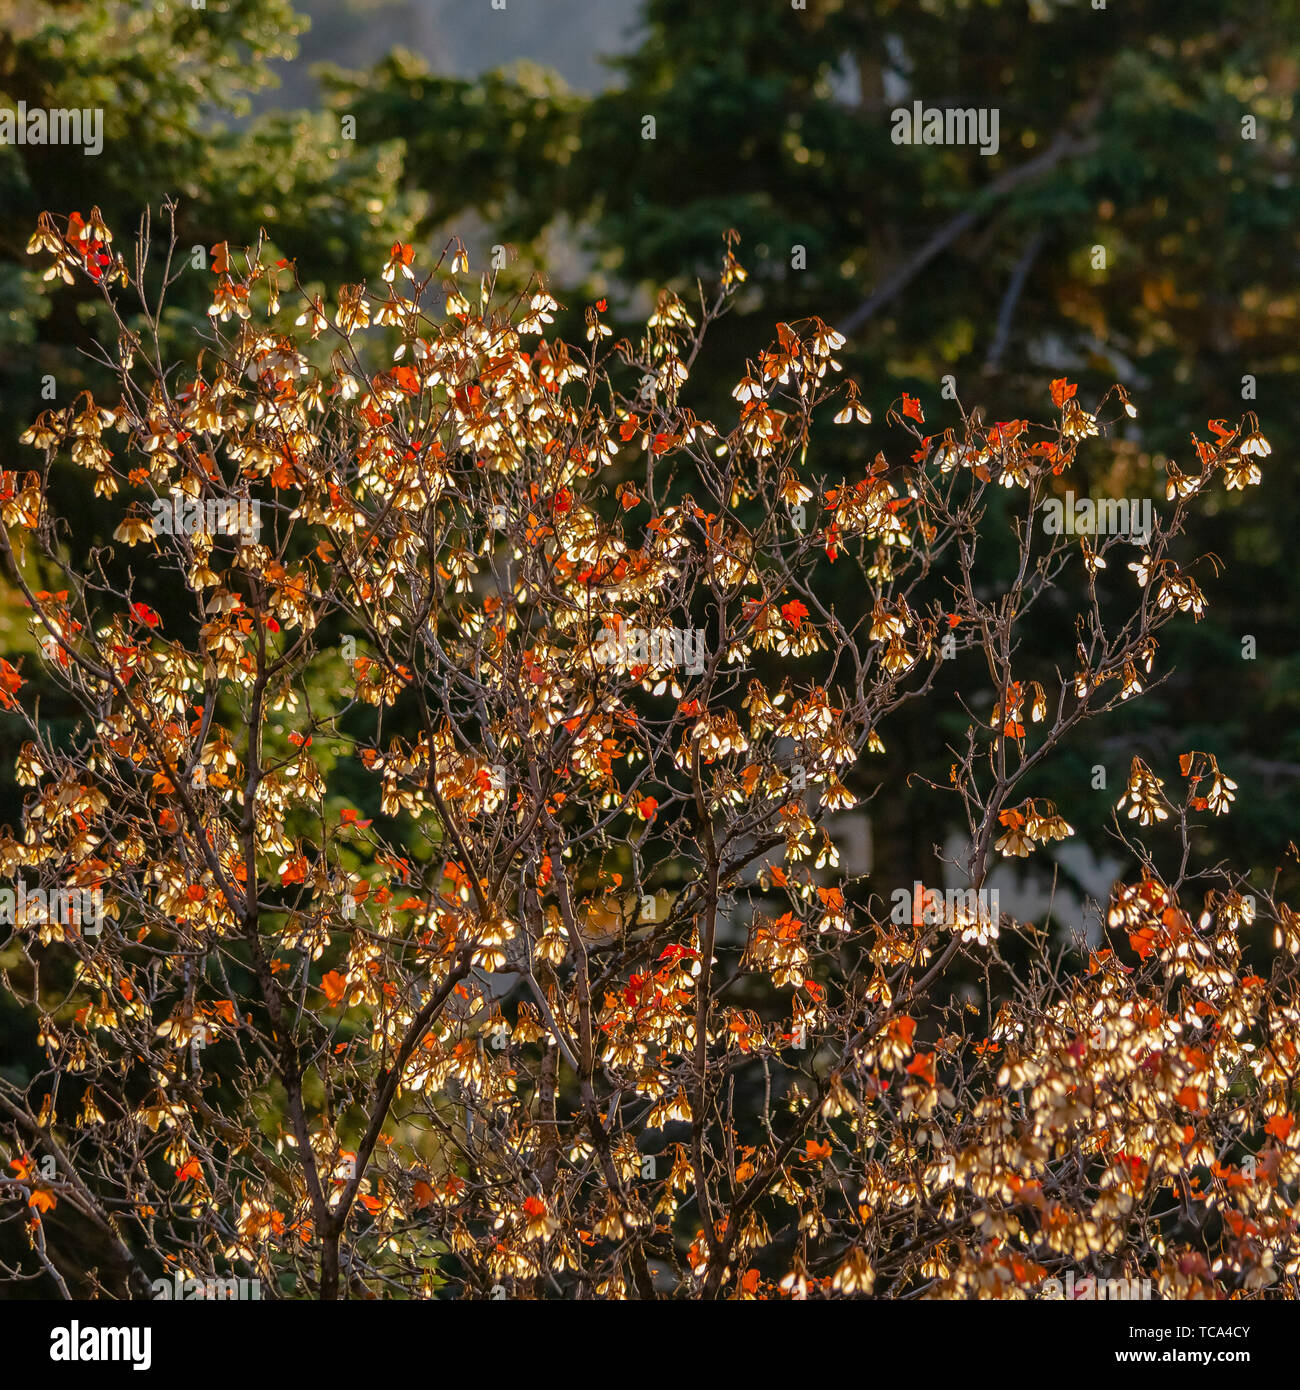 Frame Square Close up of a tree with orange leaves illuminated by sunlight on a sunny day Stock Photo